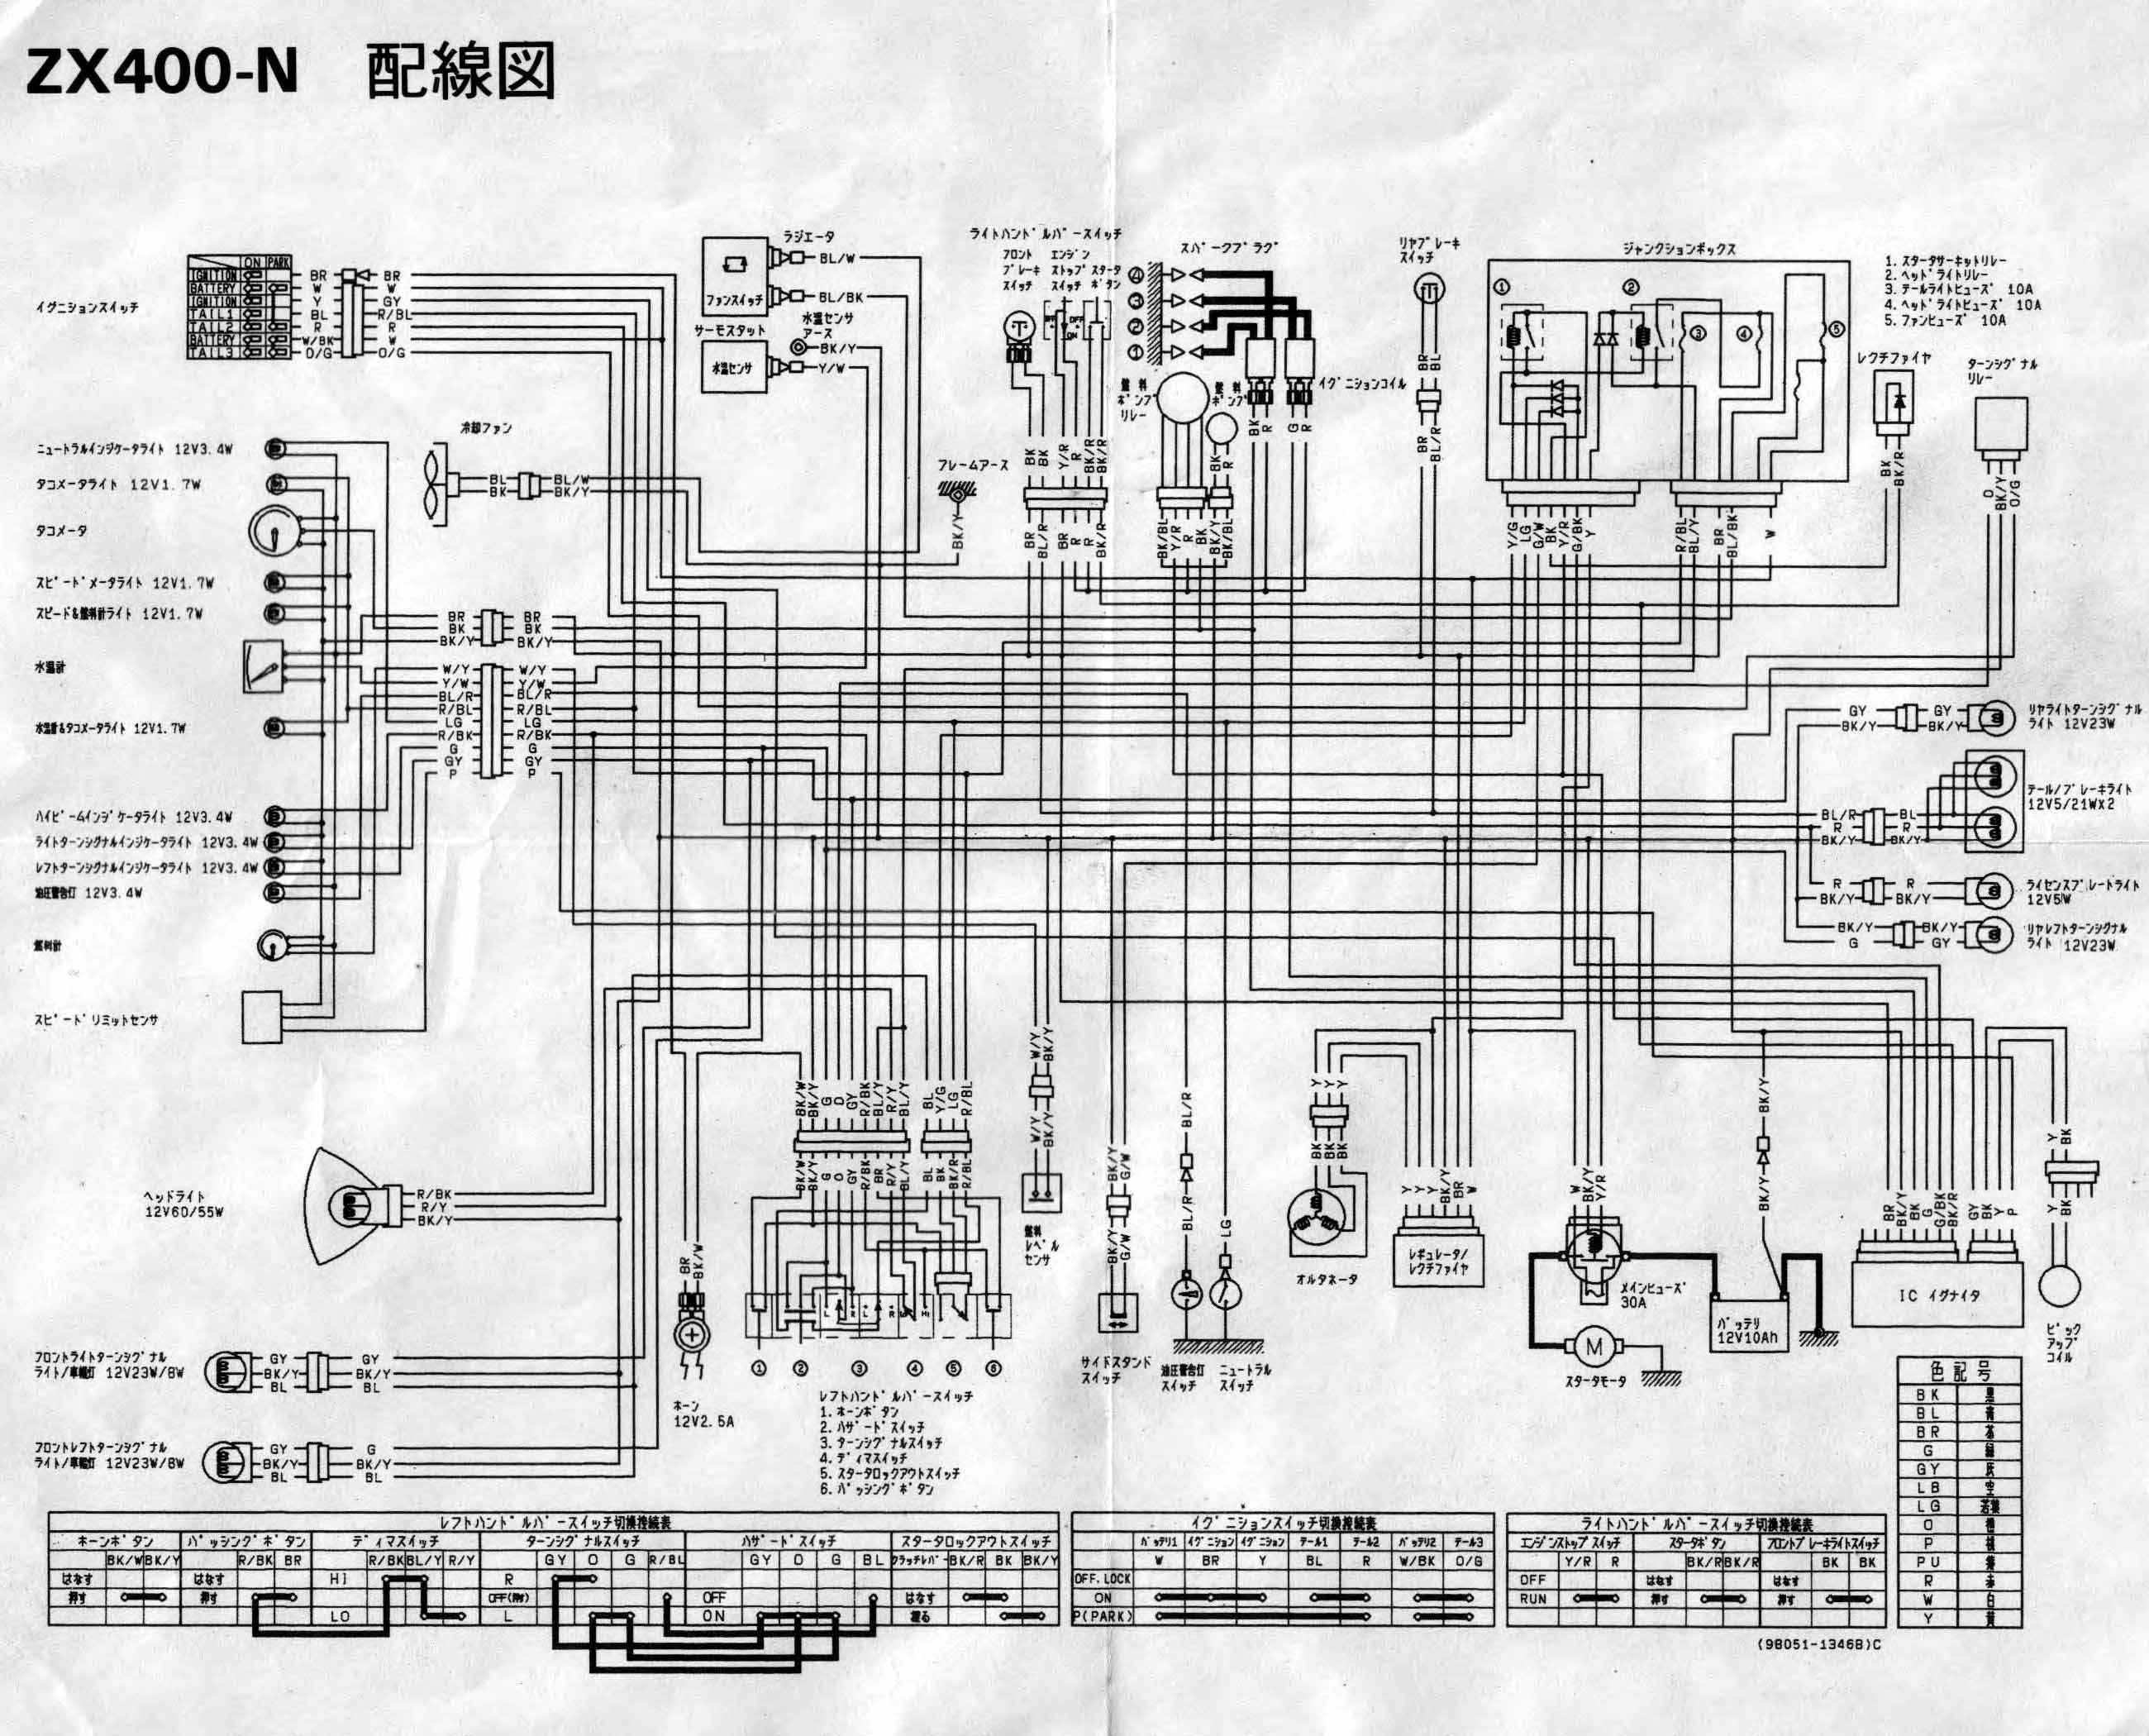 Wiring Diagram For A 2004 Kawasaki Kfx400 Qubee Quilts 650 Trusted Diagrams